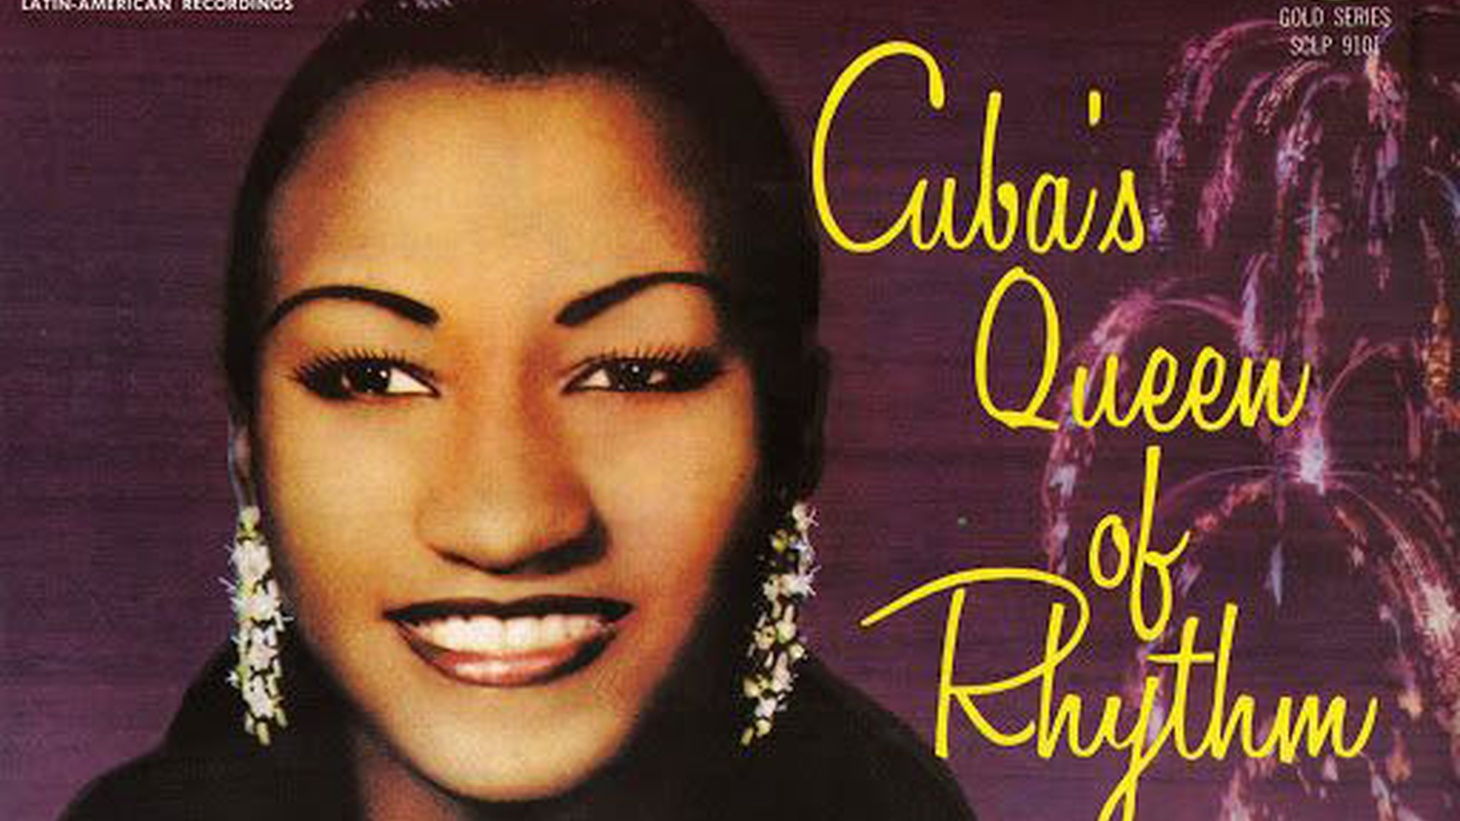 With Cuba in the news after the death of El Lider, let's revisit some great Cuban music with classics from Celia Cruz, Benny More, Machito and others.